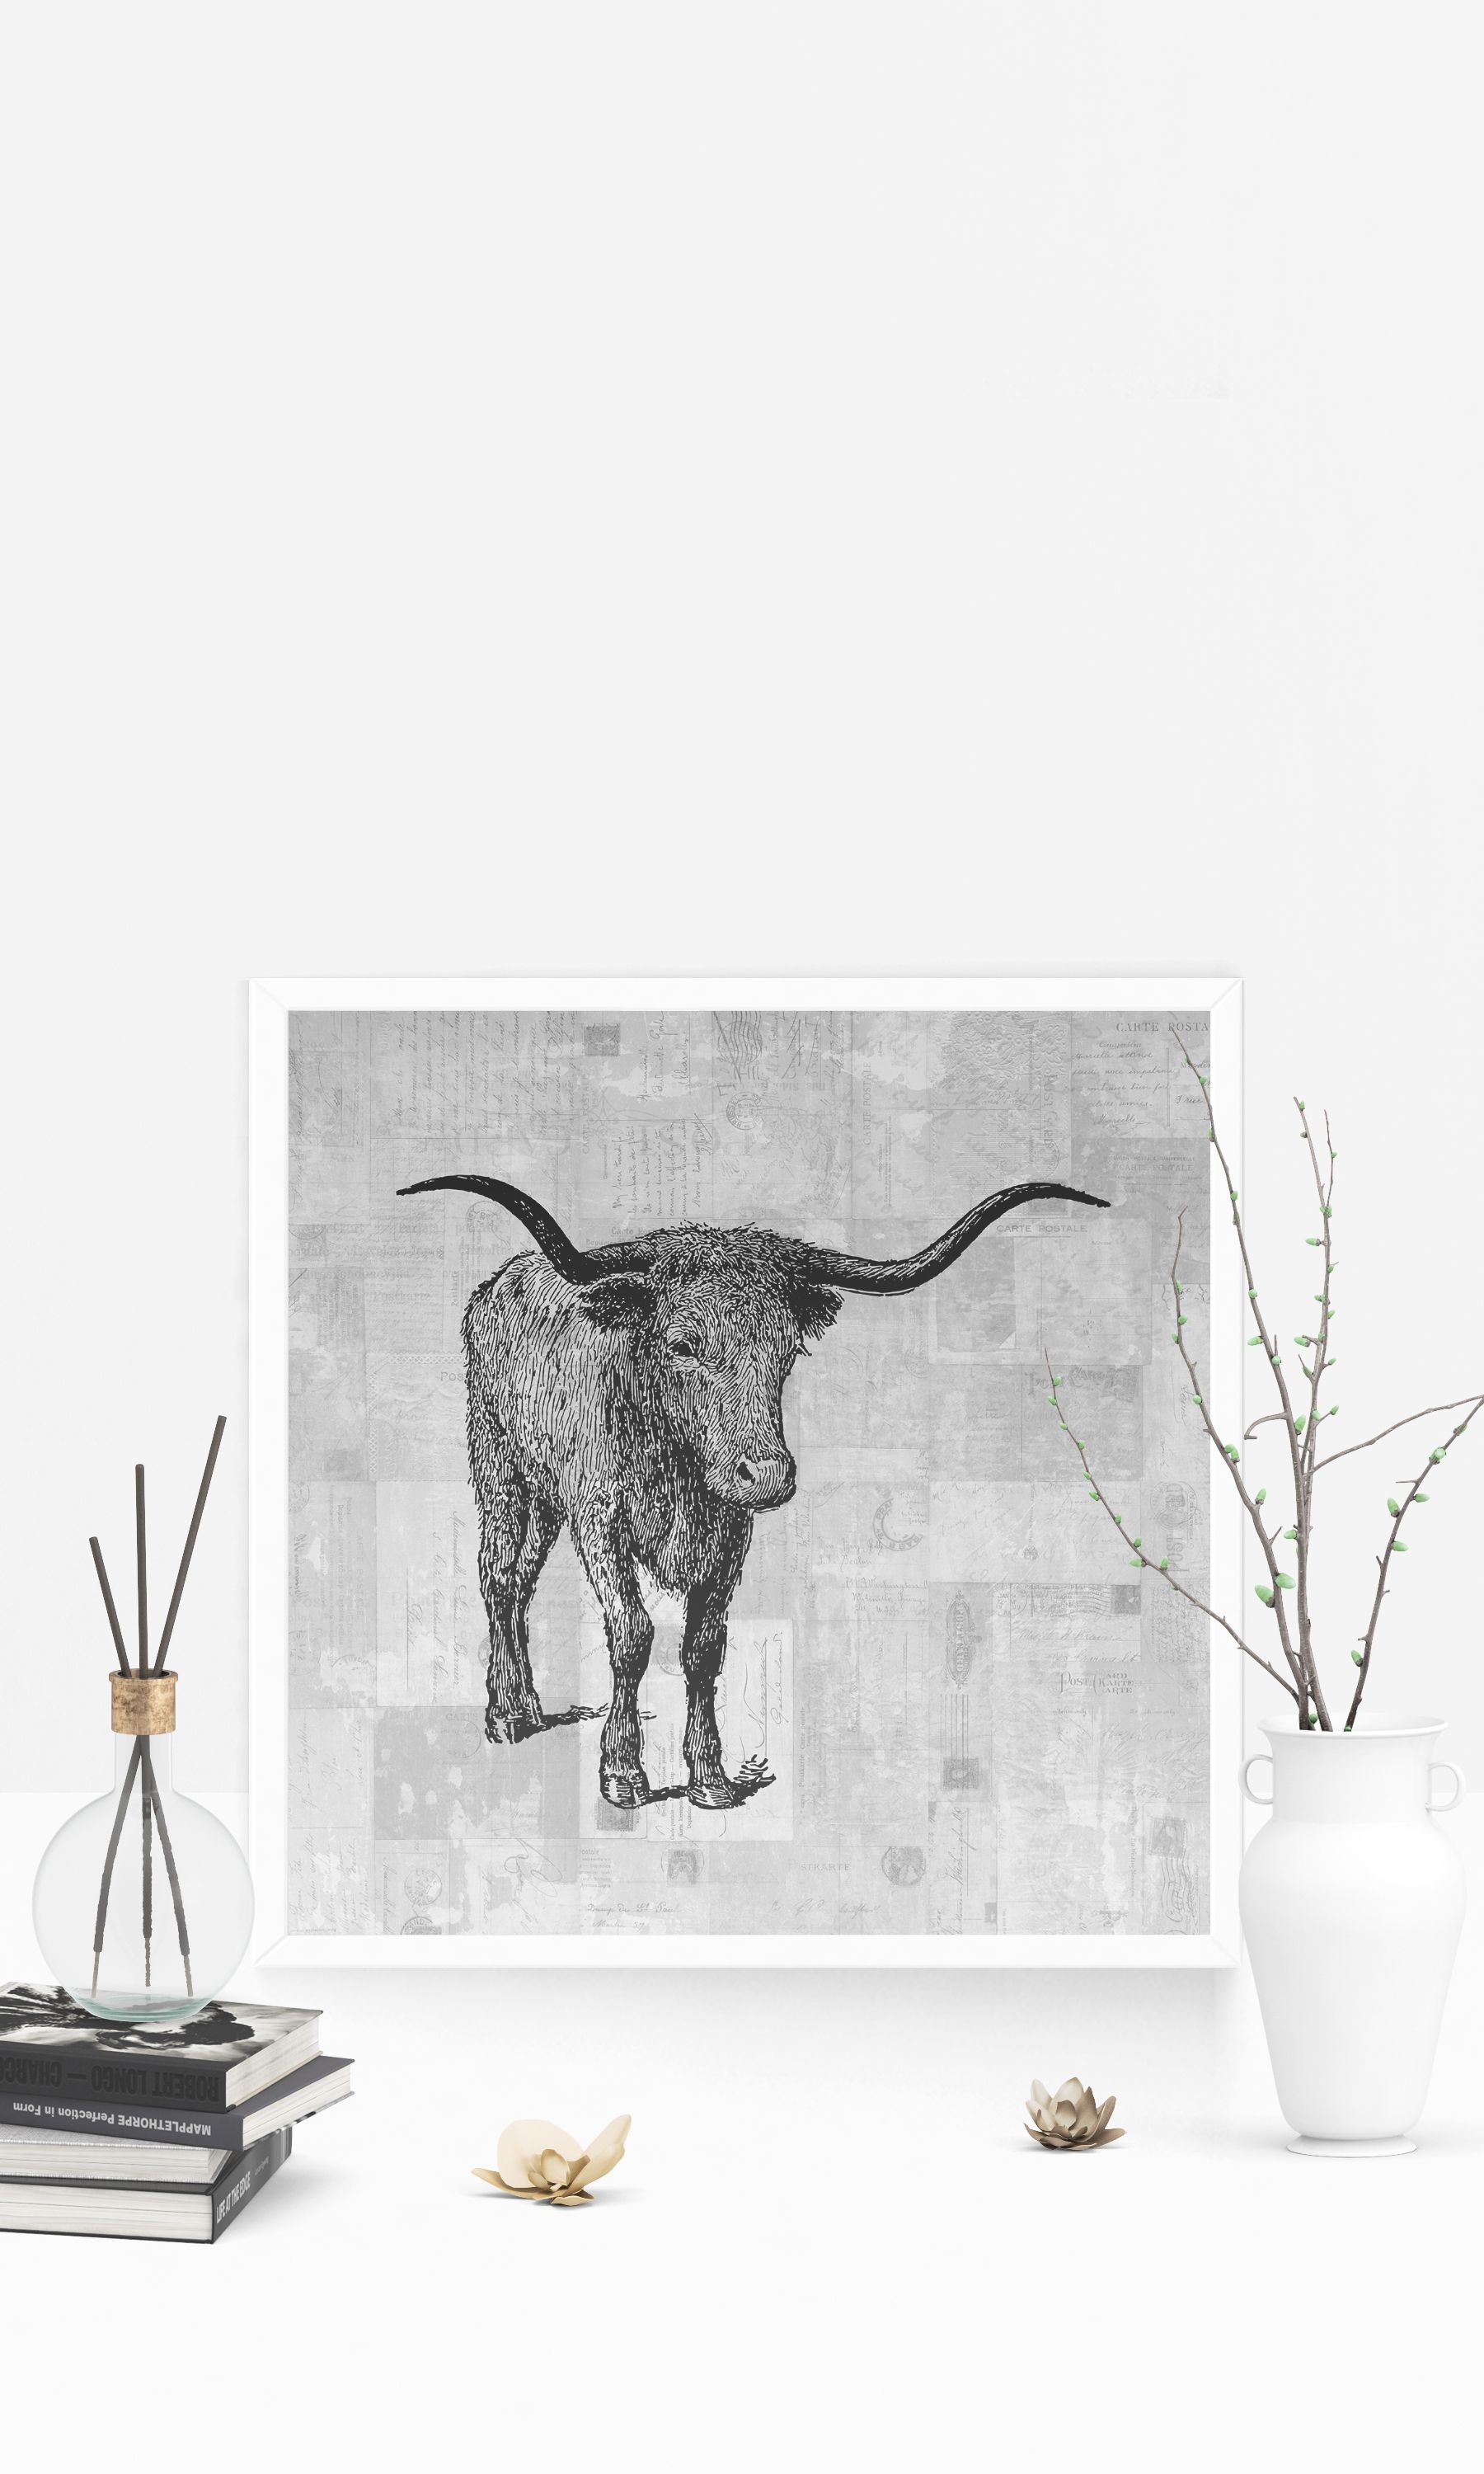 Western steed bull with horns wall art print for home decoration